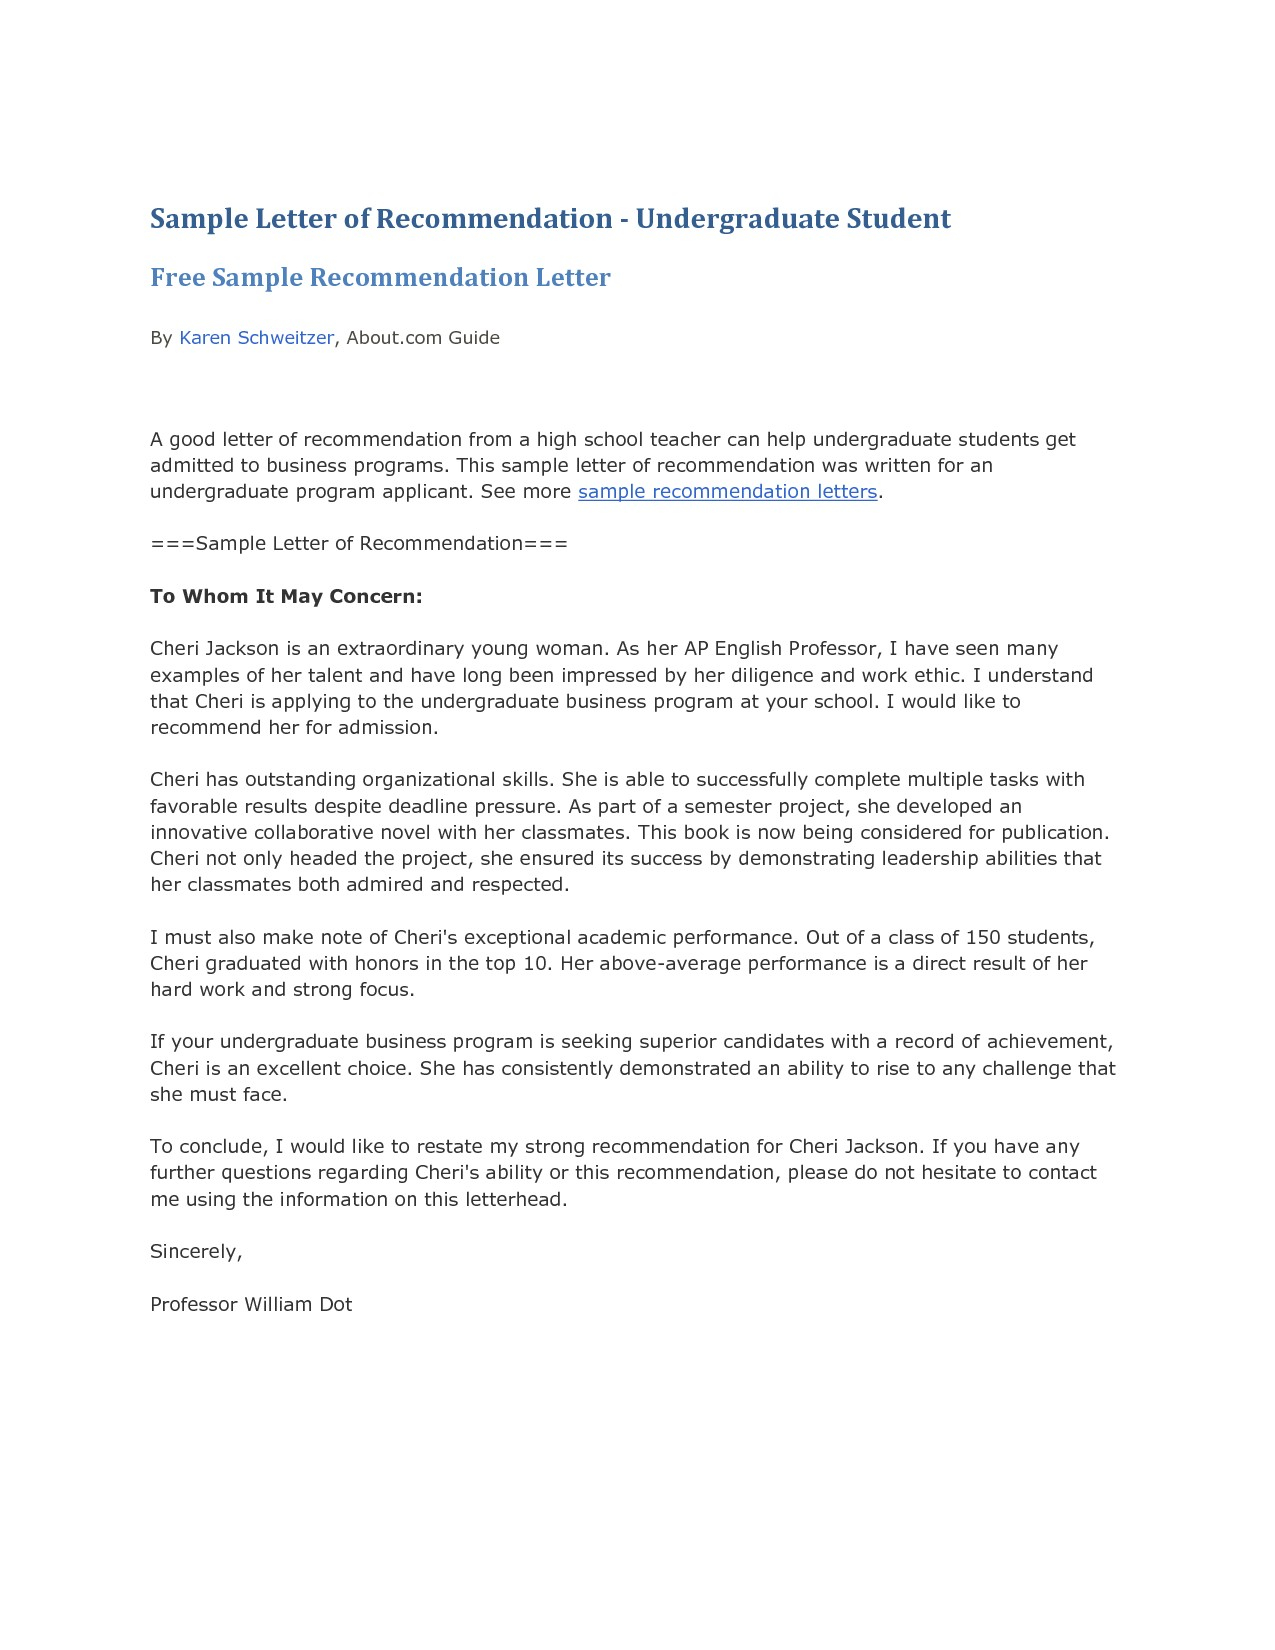 Letter of recommendation for college admission template examples letter of recommendation for college admission template letter template middle school new brilliant ideas reference spiritdancerdesigns Gallery